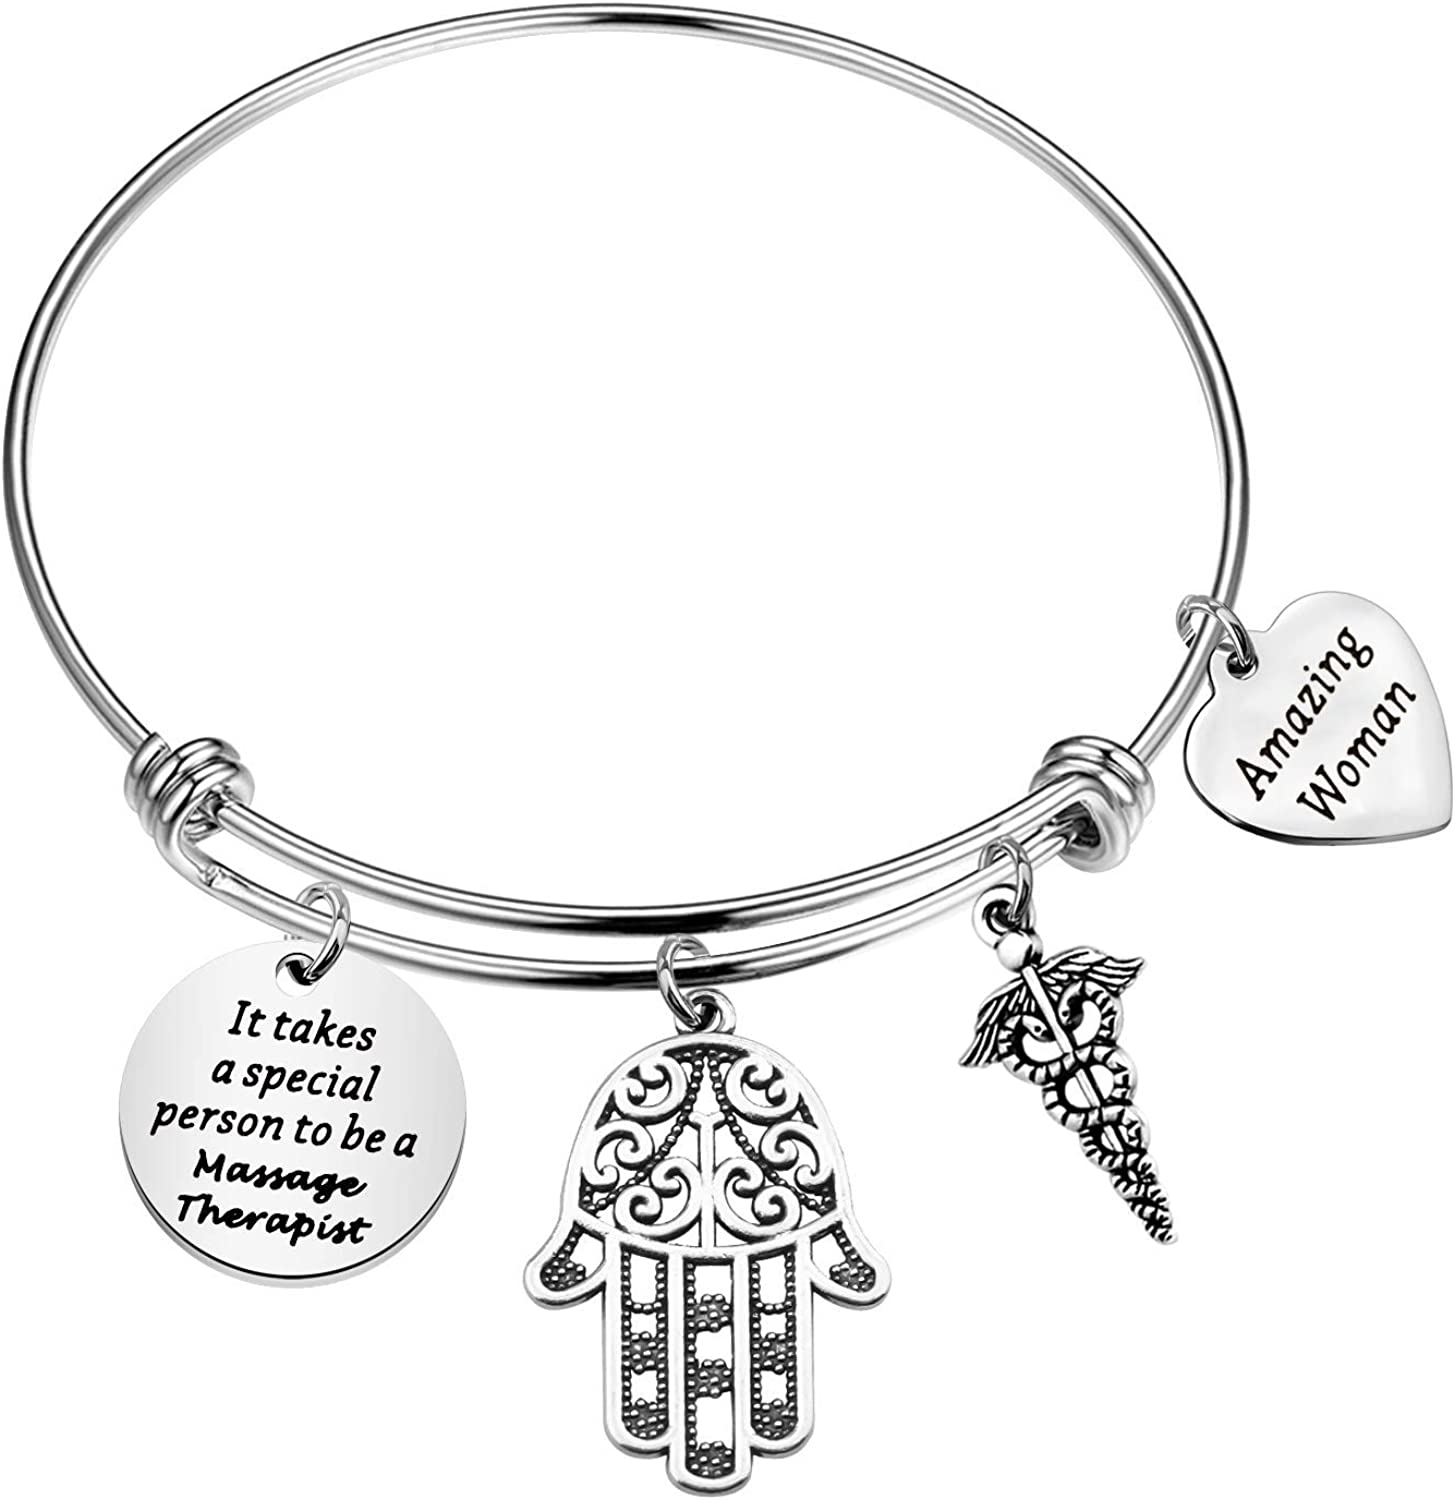 TIIMG Massage Indefinitely Therapist Gift Don't miss the campaign Bracelet Apprecia